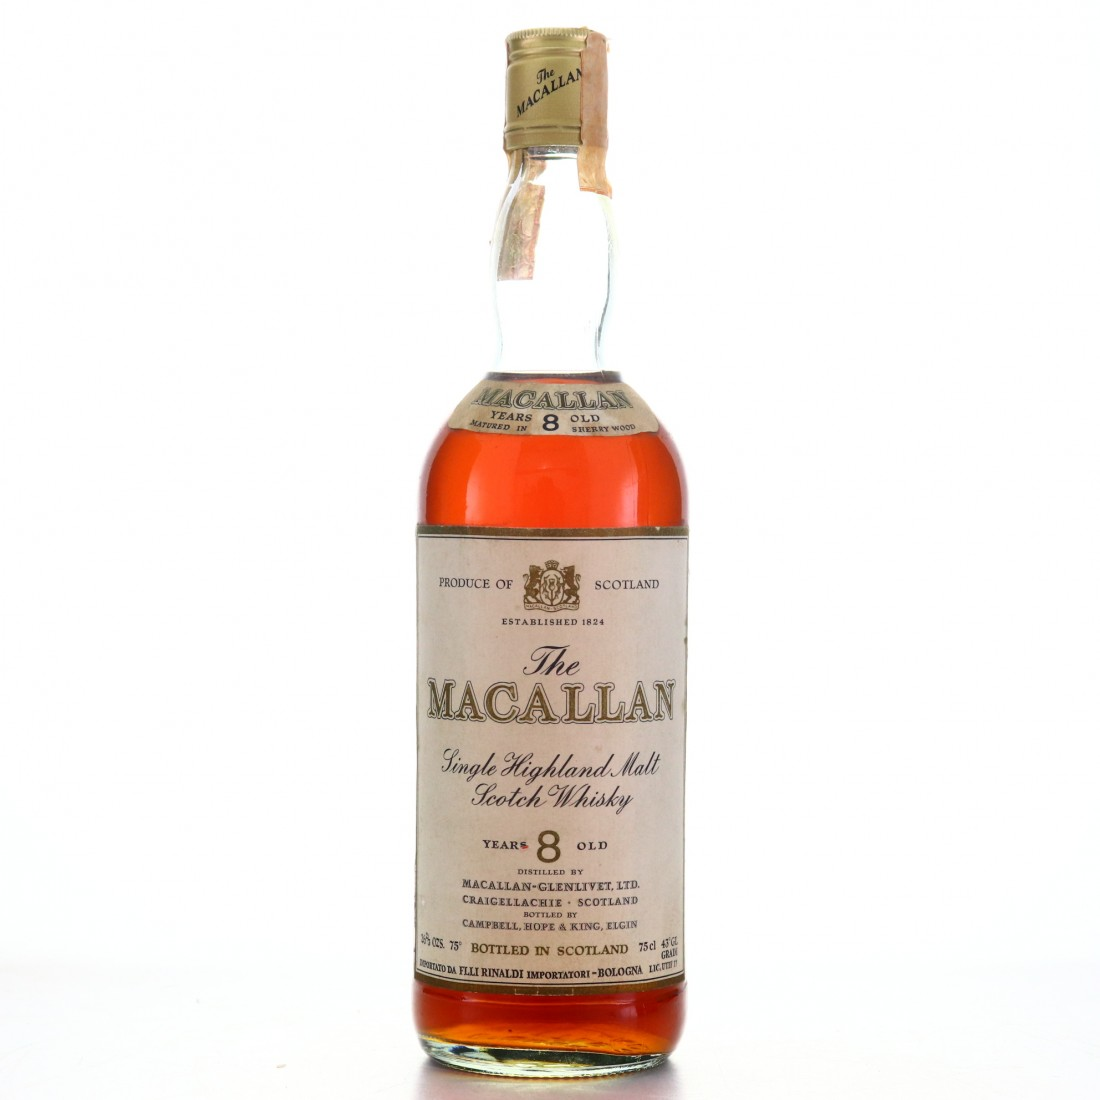 Macallan 8 Year Old Campbell, Hope and King 1970s / Rinaldi Import